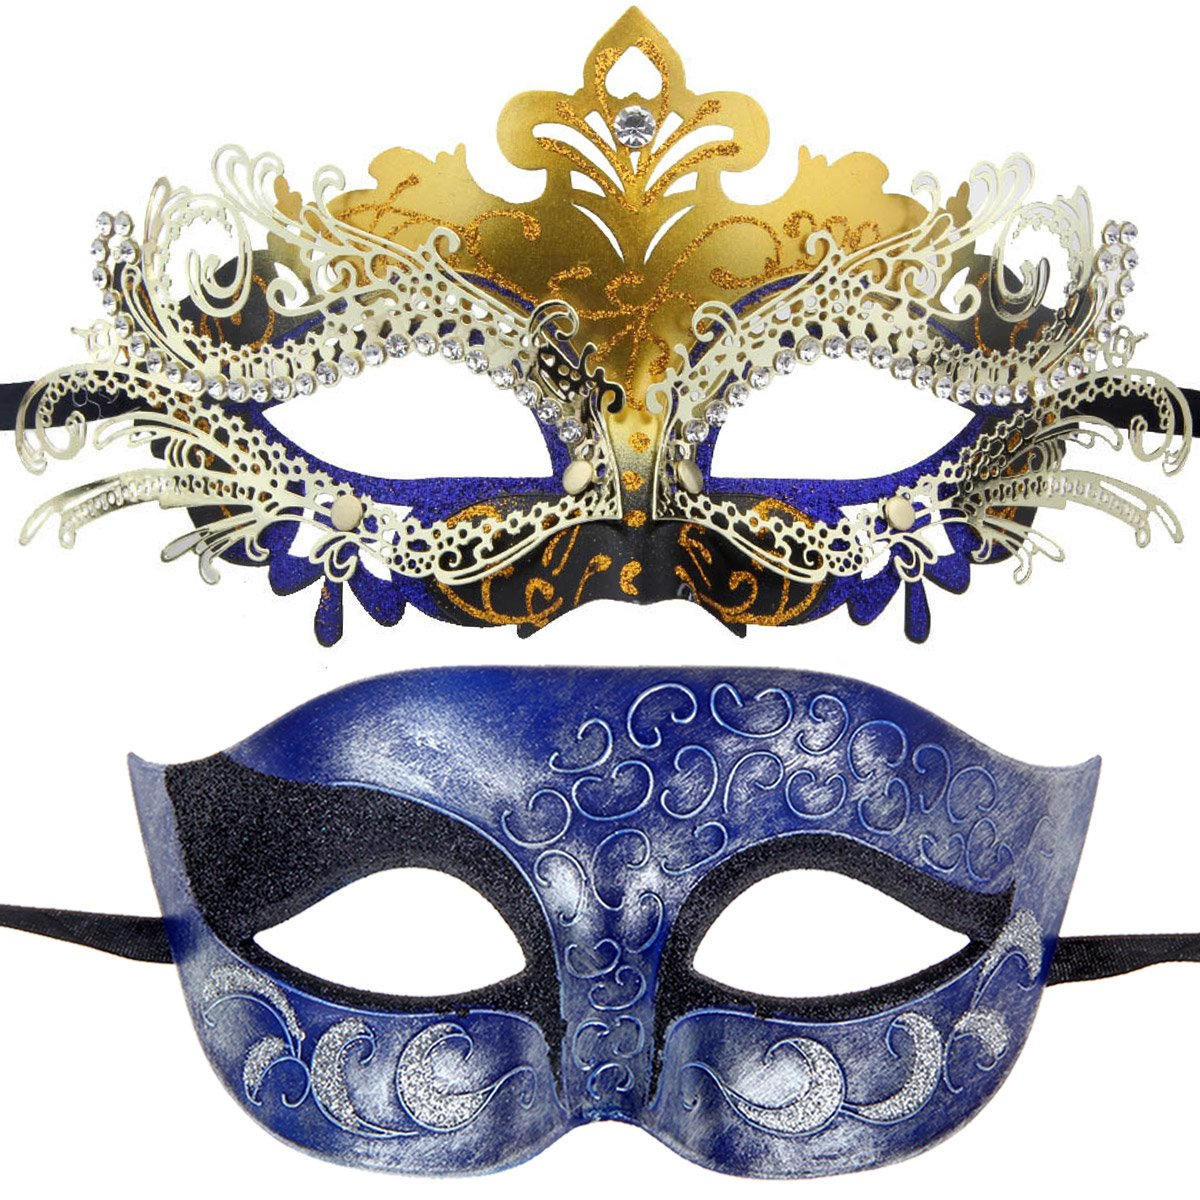 One Pair Couples Half Wedding Venetian Masquerades Masks Party Costumes Accessory (Gold&Dark Blue)